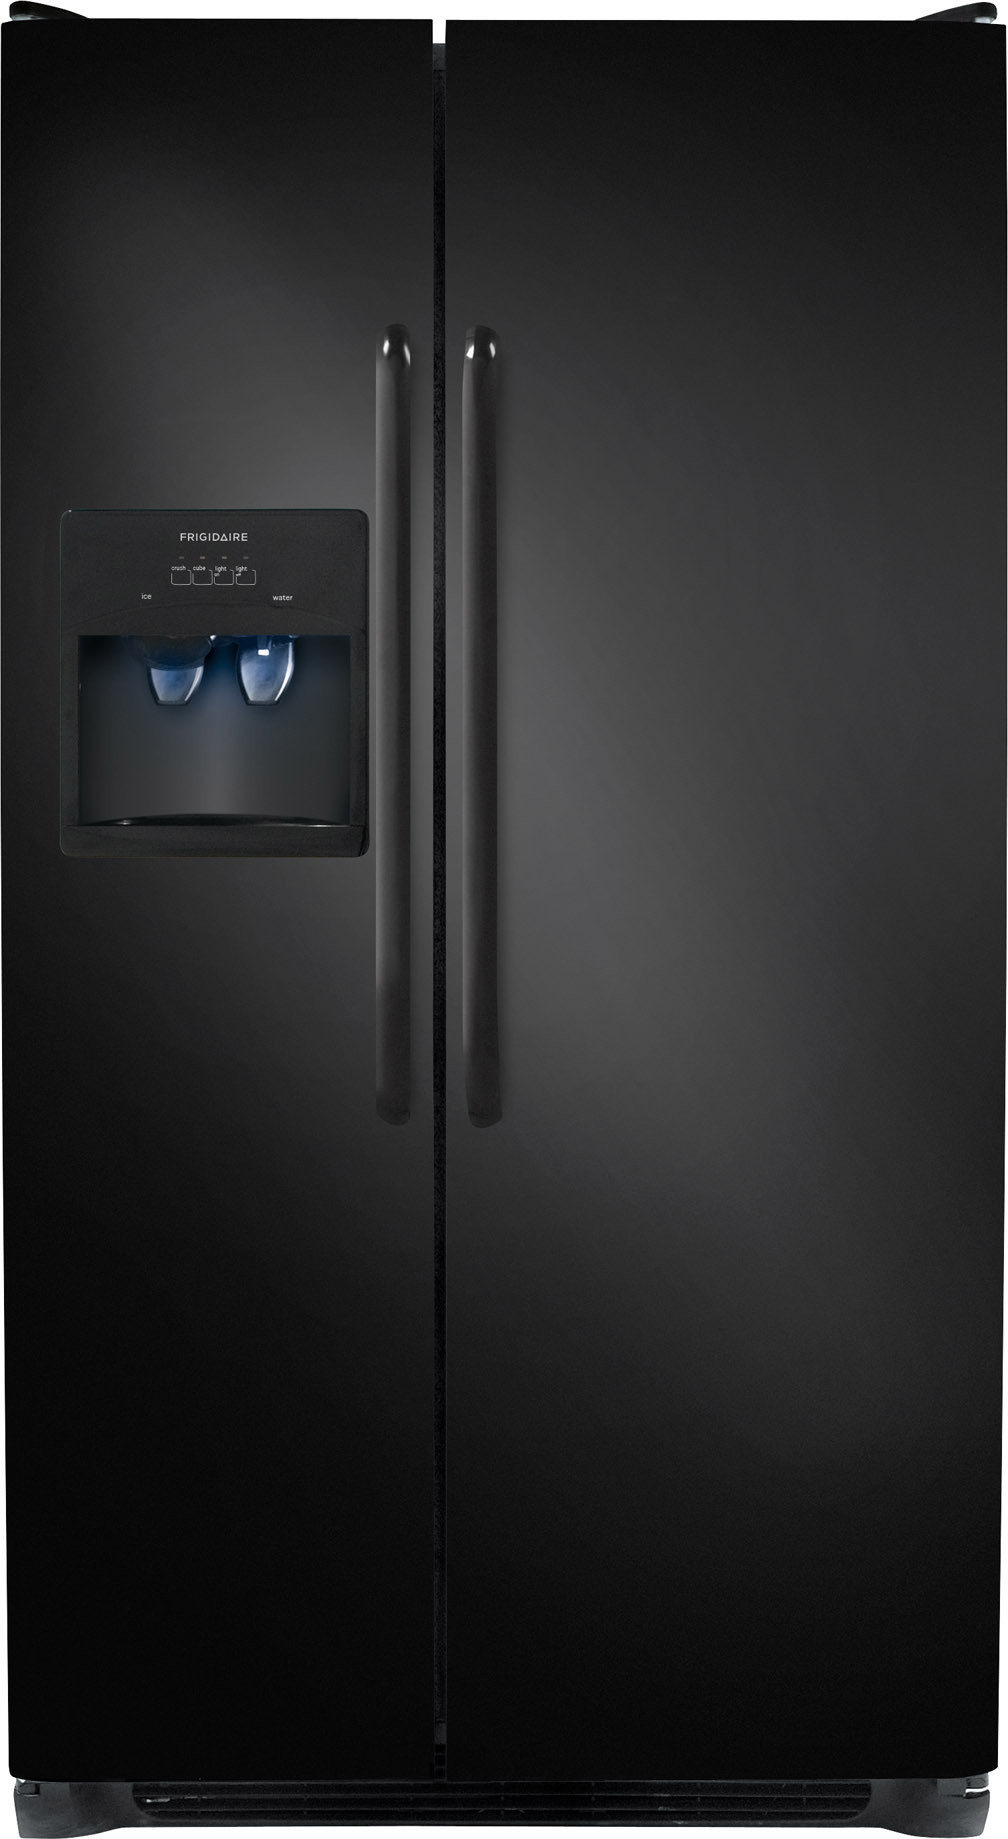 Side by side refrigerator no water dispenser - Side By Side Refrigerator No Water Dispenser 6